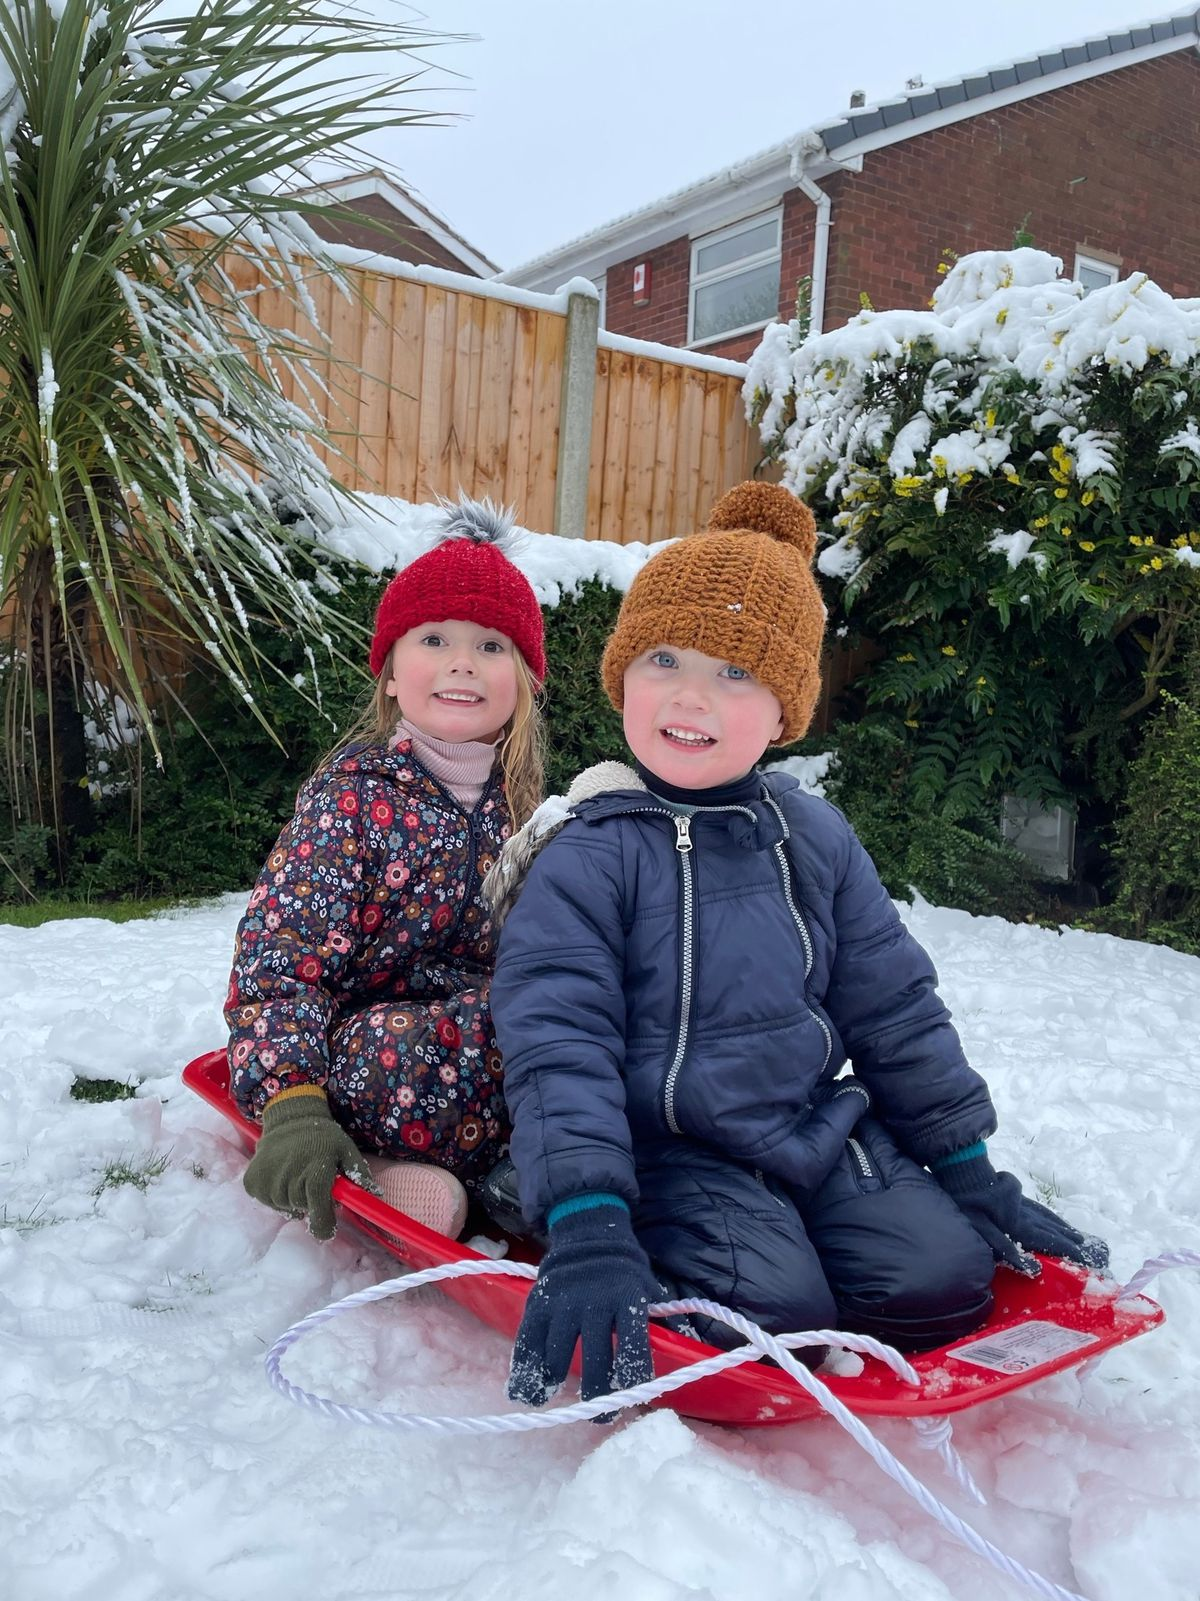 Children across the region continued to enjoy sledding and other activities in the snow